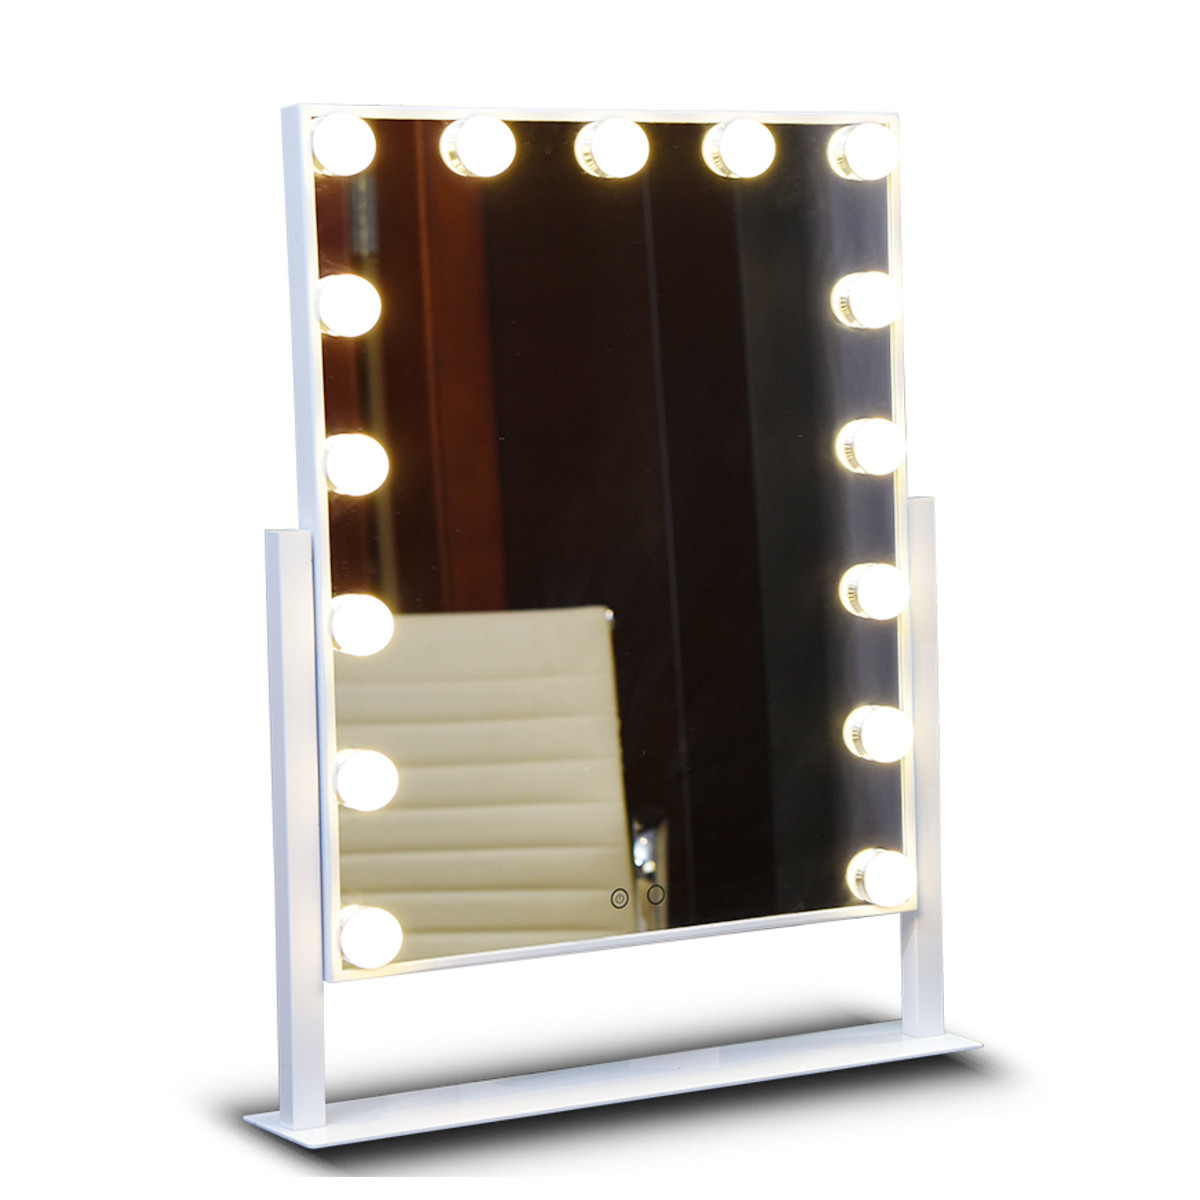 Large LED Makeup Mirror Roration Tabletop White Yellow Lighted Touch Screen Vanity Mirror With 15PCS Bulbs For Dressing Room wooden dressing table makeup desk with stool oval rotation mirror 5 drawers white bedroom furniture dropshipping